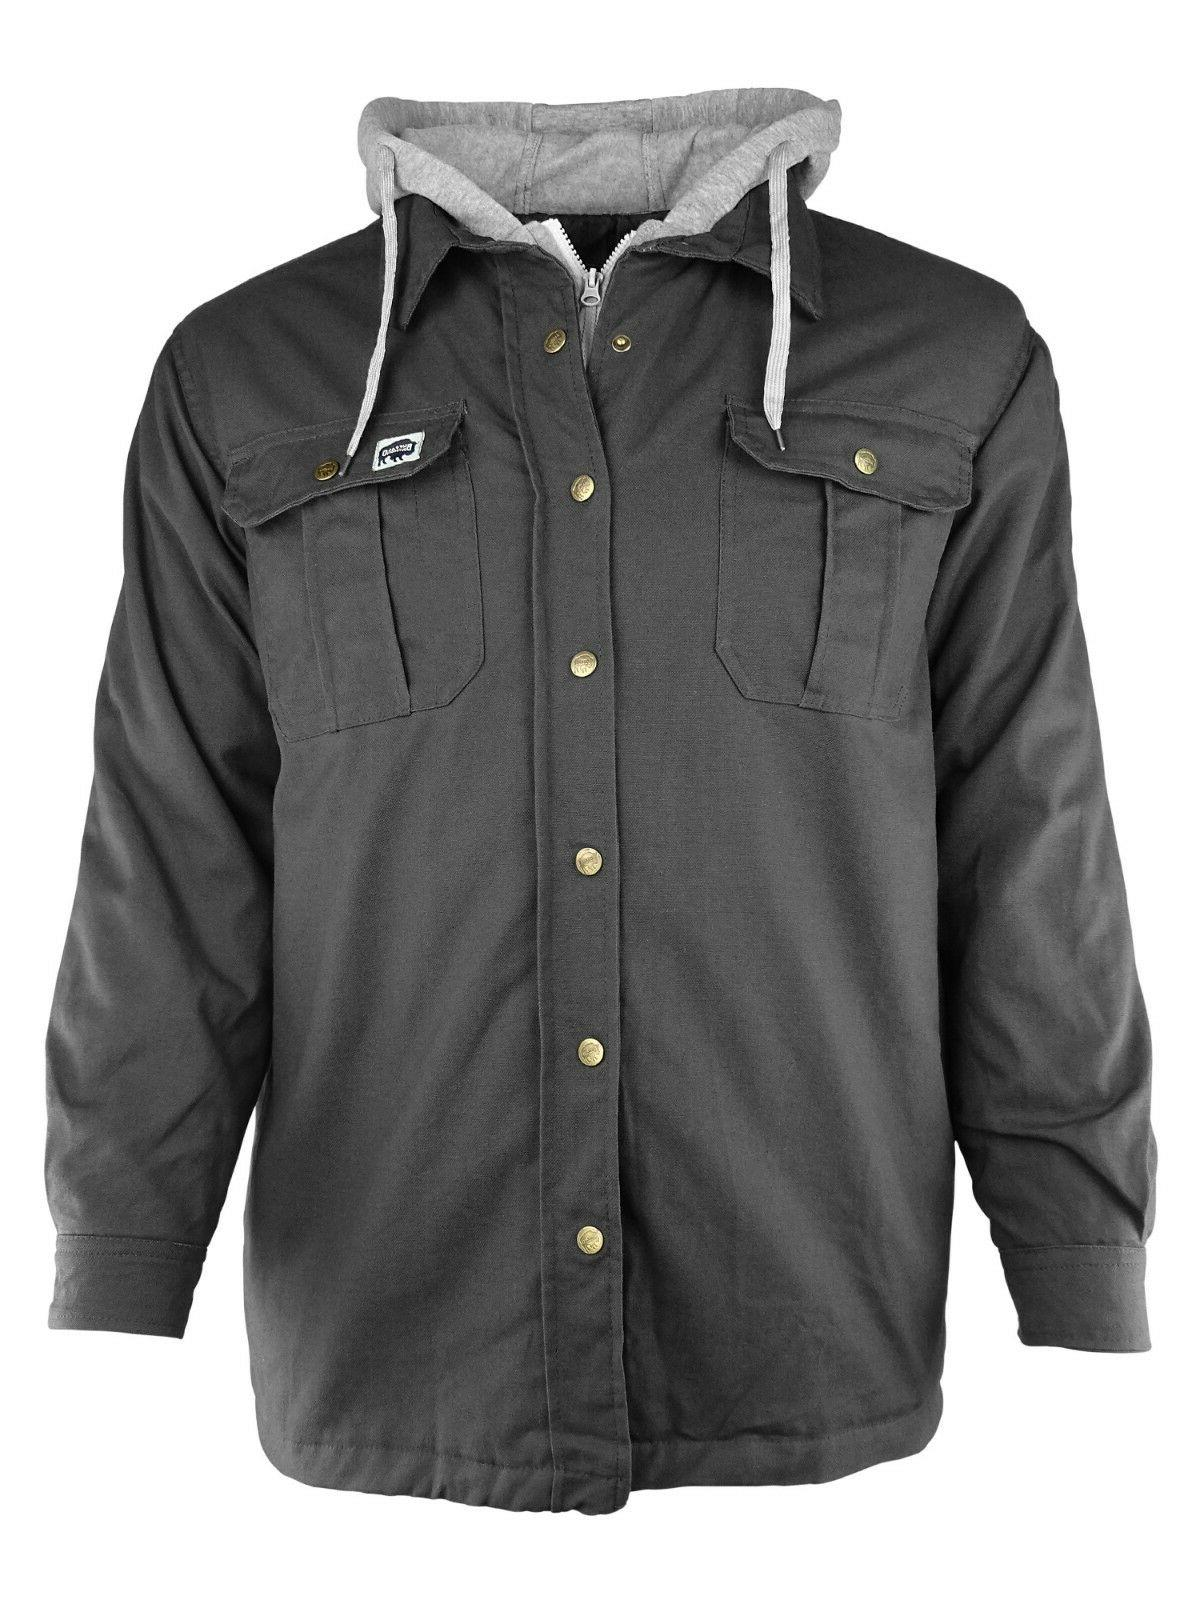 Canvas Work Black, Brown or Gray Men's M-3XL by Outdoors